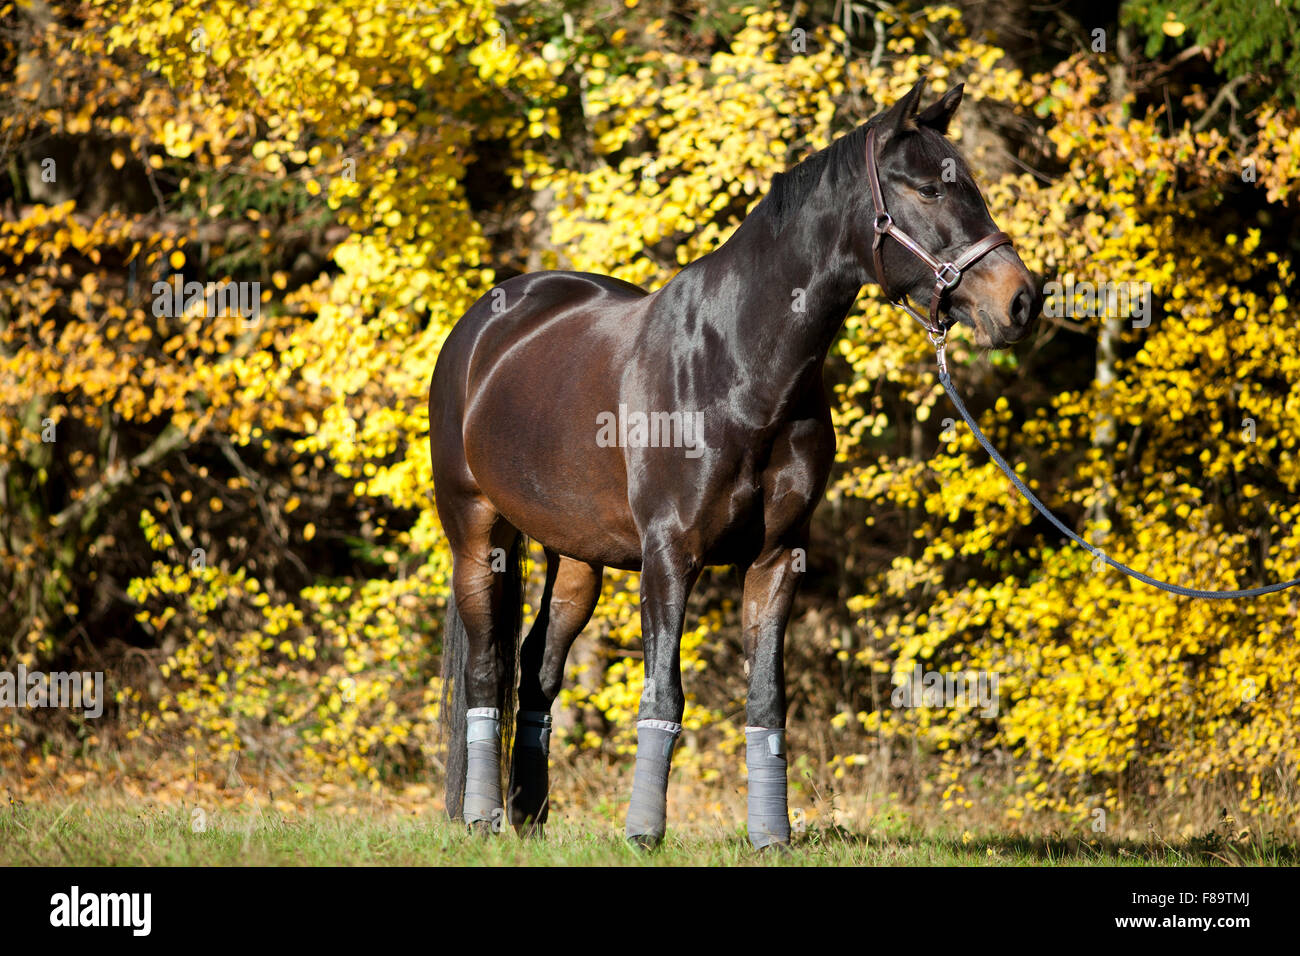 horse portrait on meadow with yellow autumn leaves in background - Stock Image